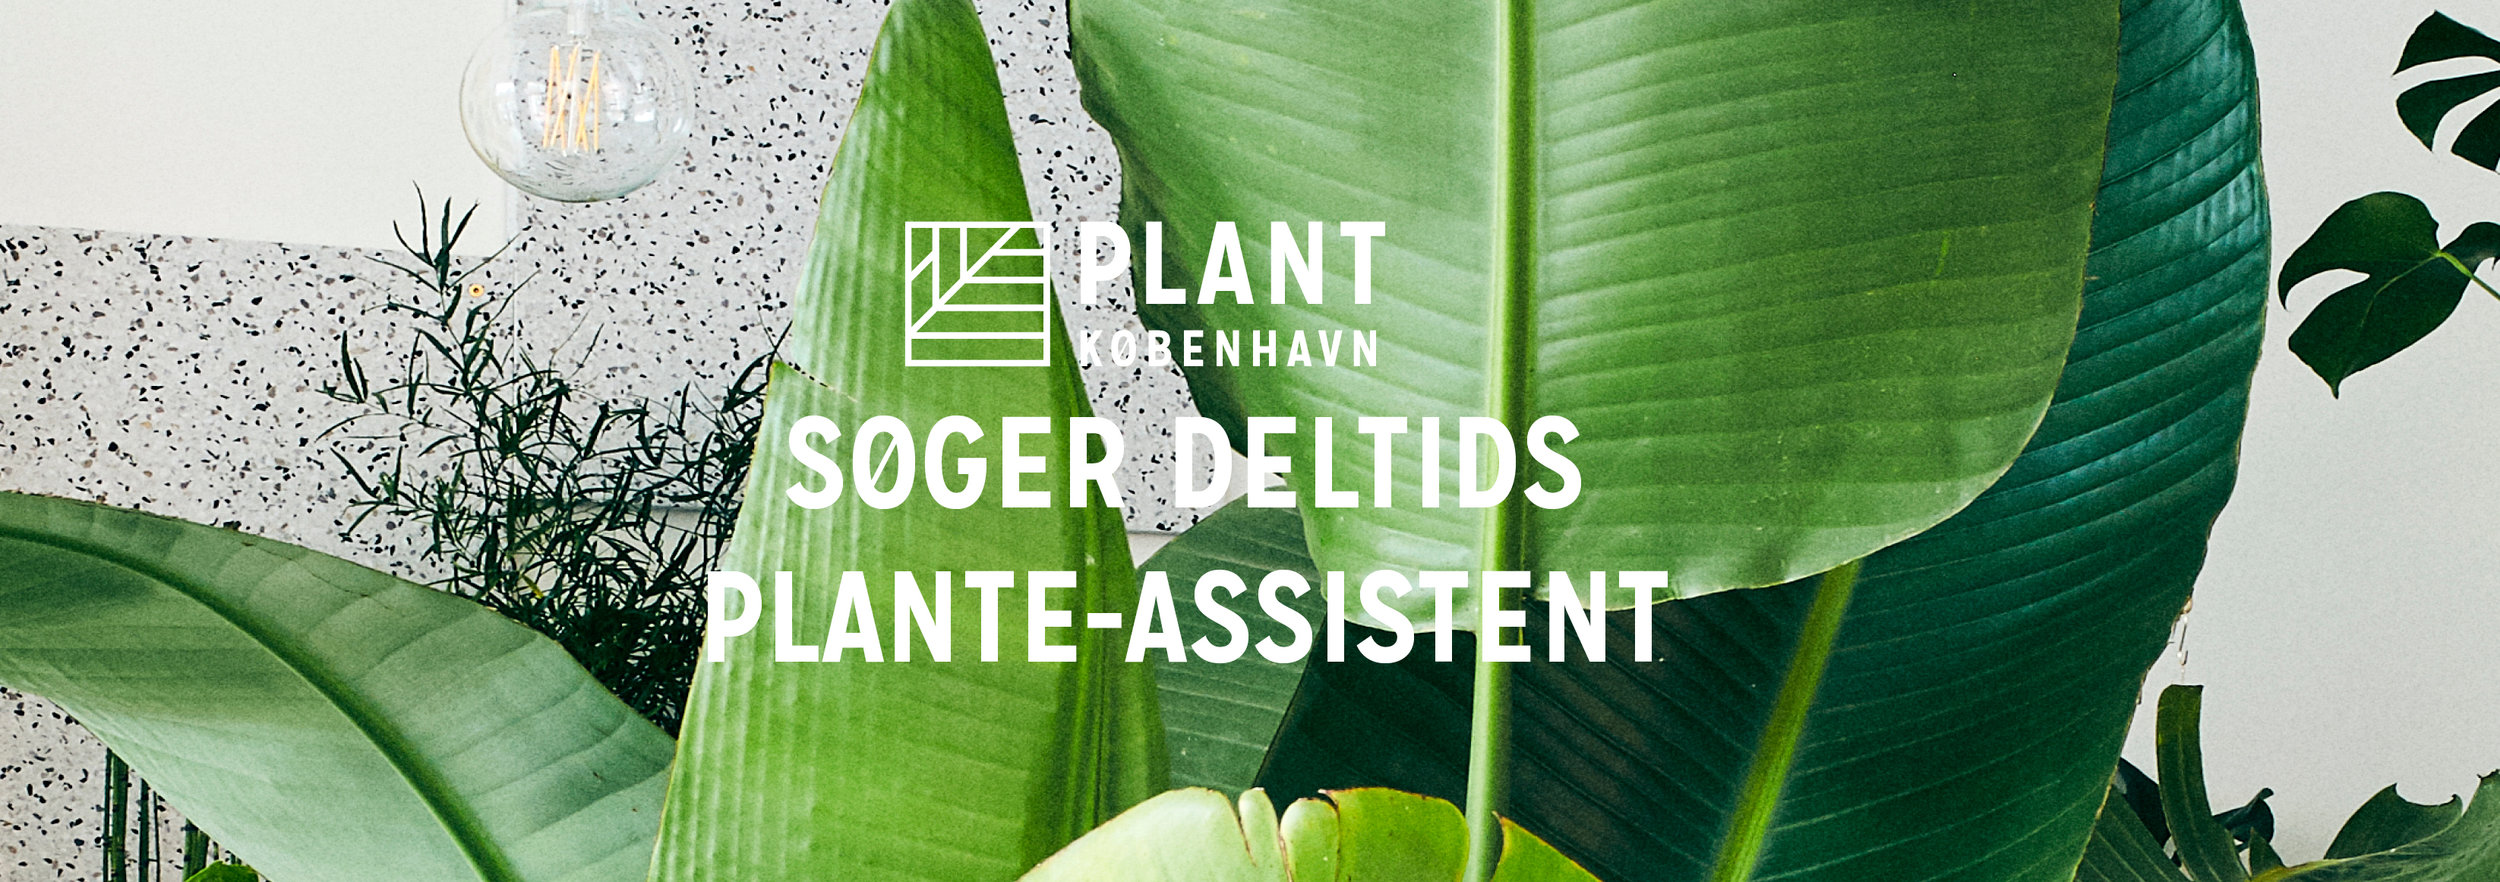 plant_assistent2019.jpg